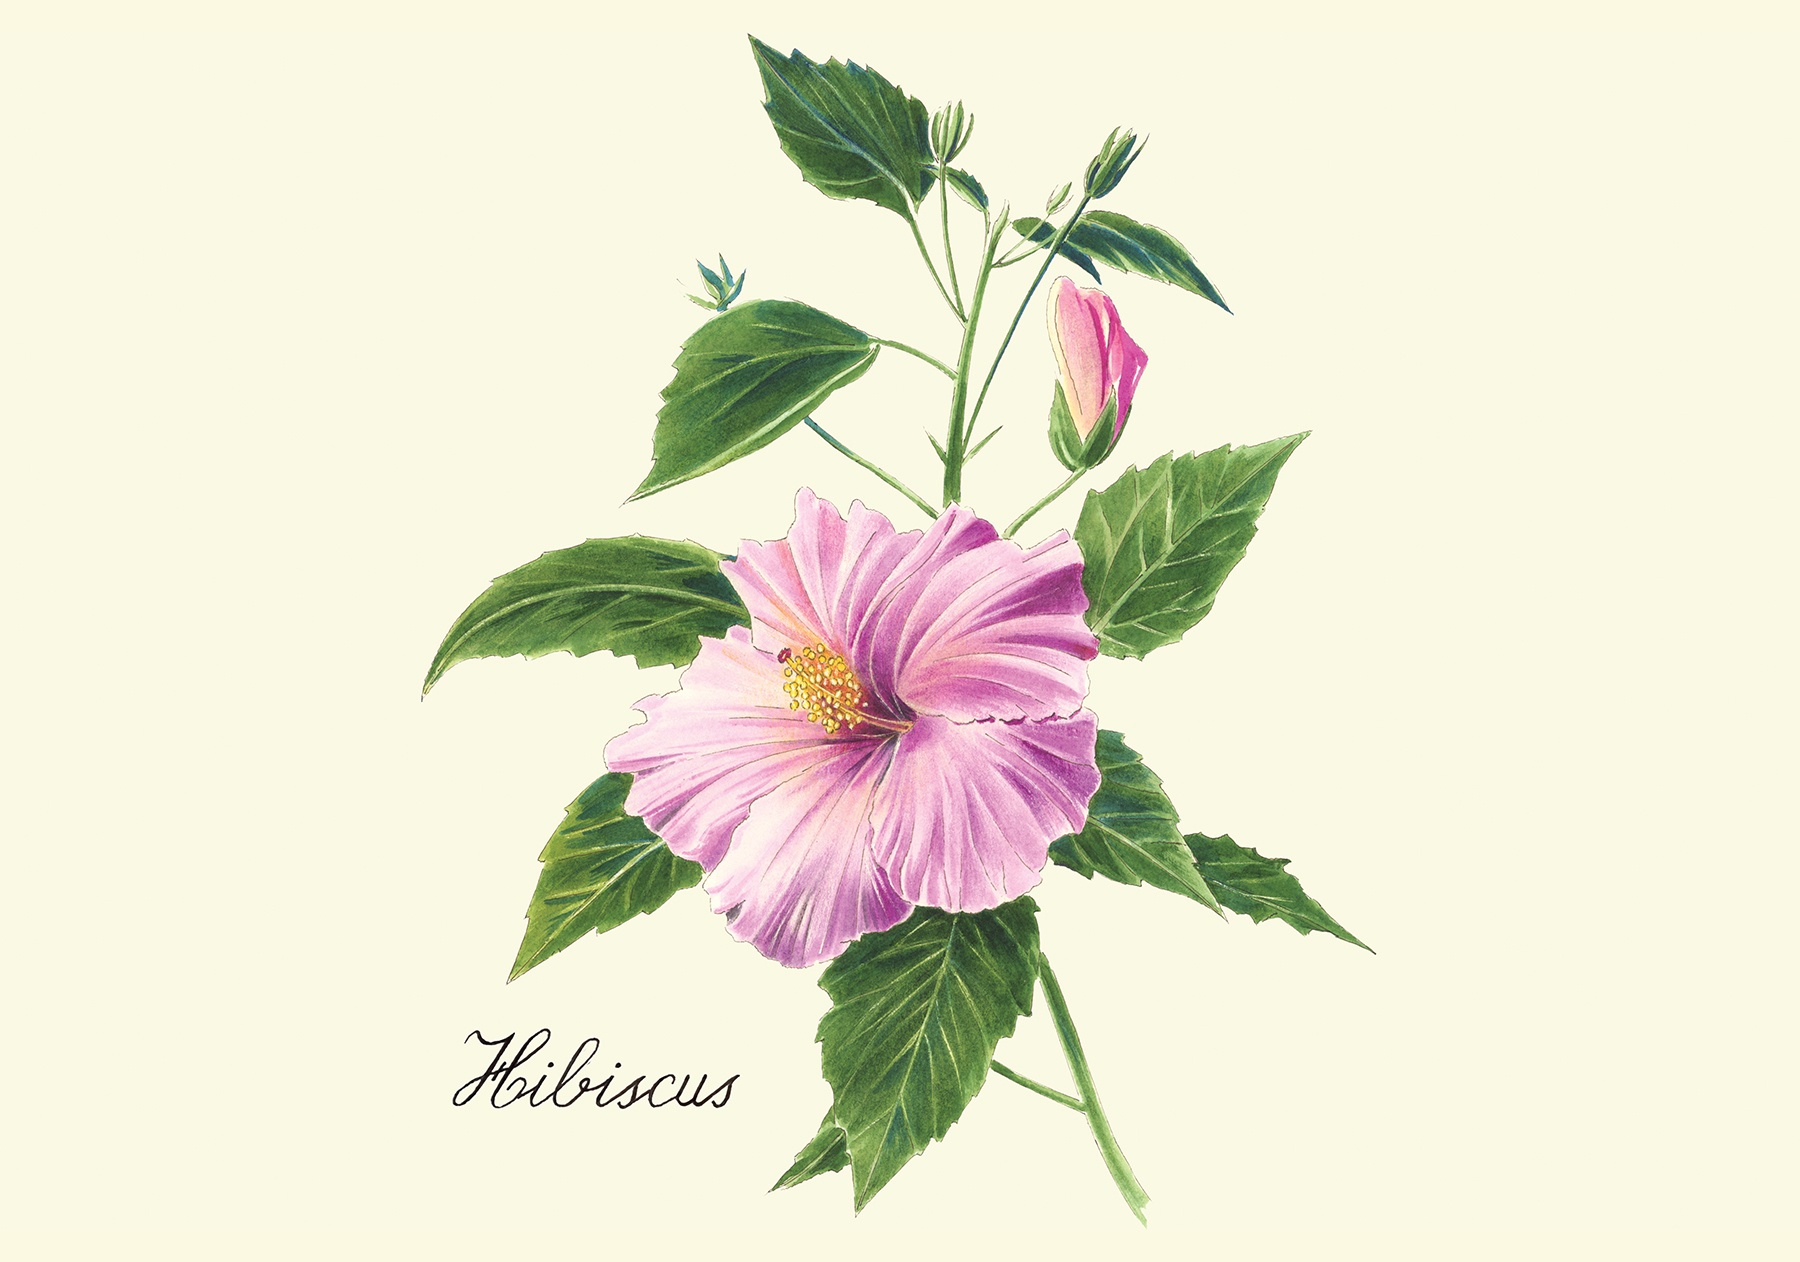 Illustration: Hibiscus